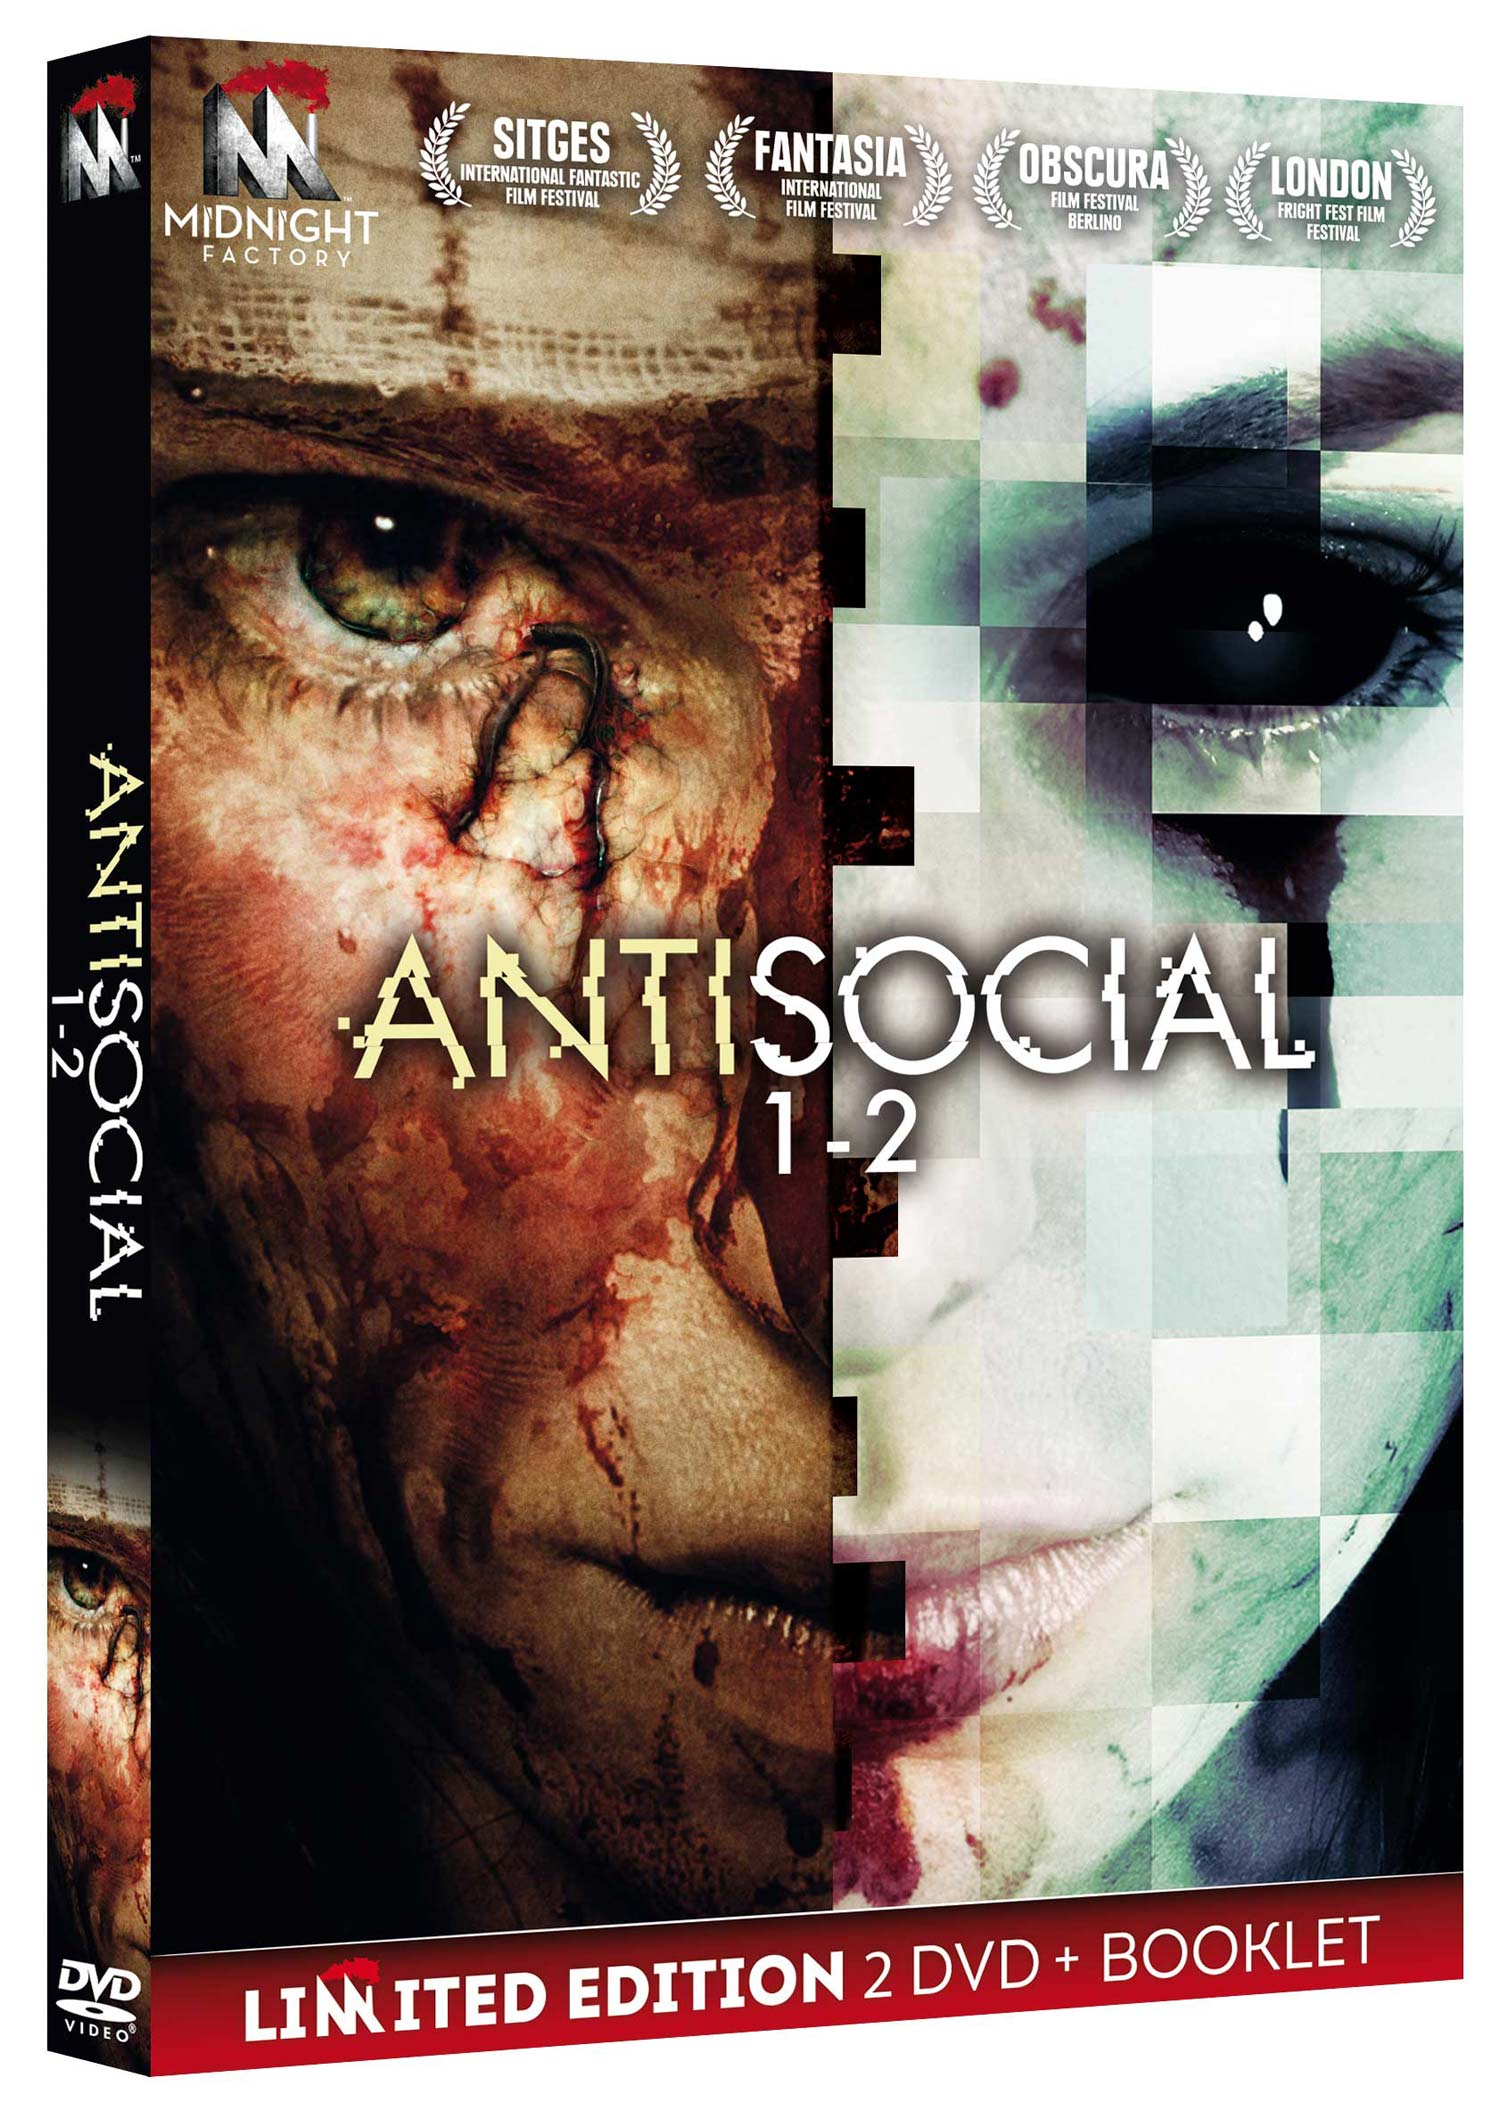 ANTISOCIAL 1-2 (2 DVD+BOOKLET) (DVD)